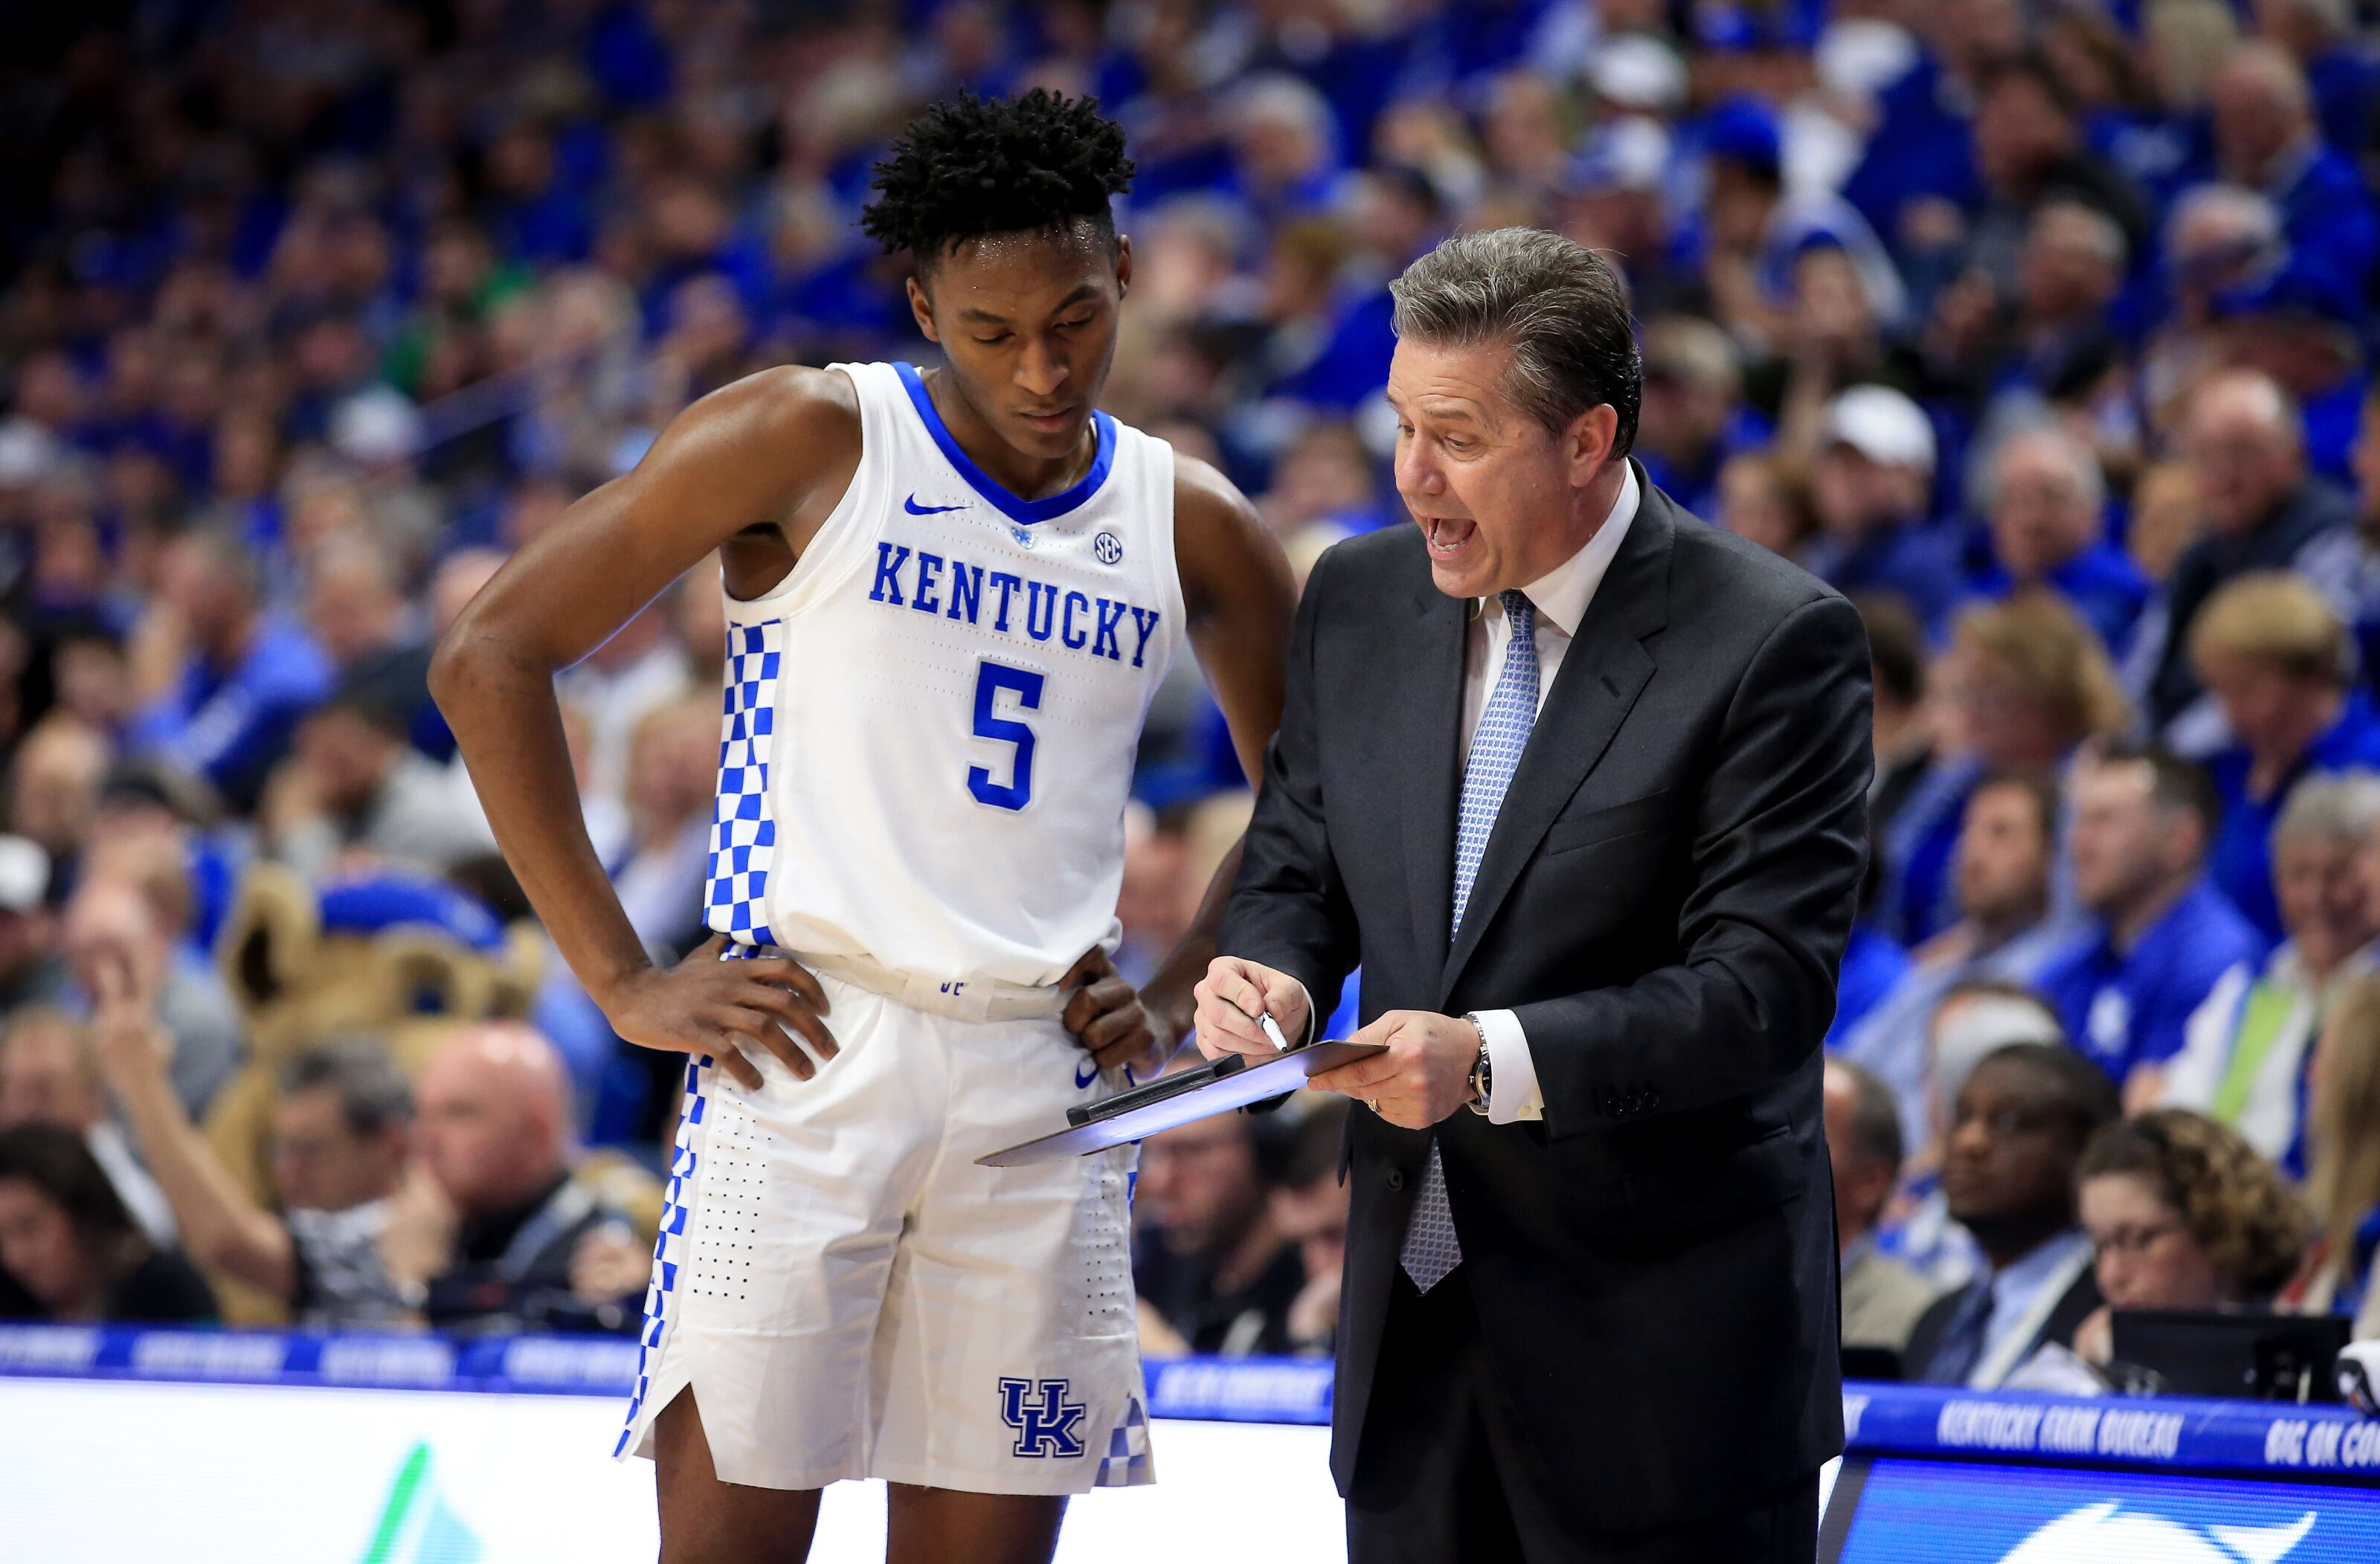 LEXINGTON, KENTUCKY - FEBRUARY 05: Immanuel Quickley #5 of the Kentucky Wildcats and head coach John Calipari discuss a play against the South Carolina Gamecocks at Rupp Arena on February 05, 2019 in Lexington, Kentucky. (Photo by Andy Lyons/Getty Images)